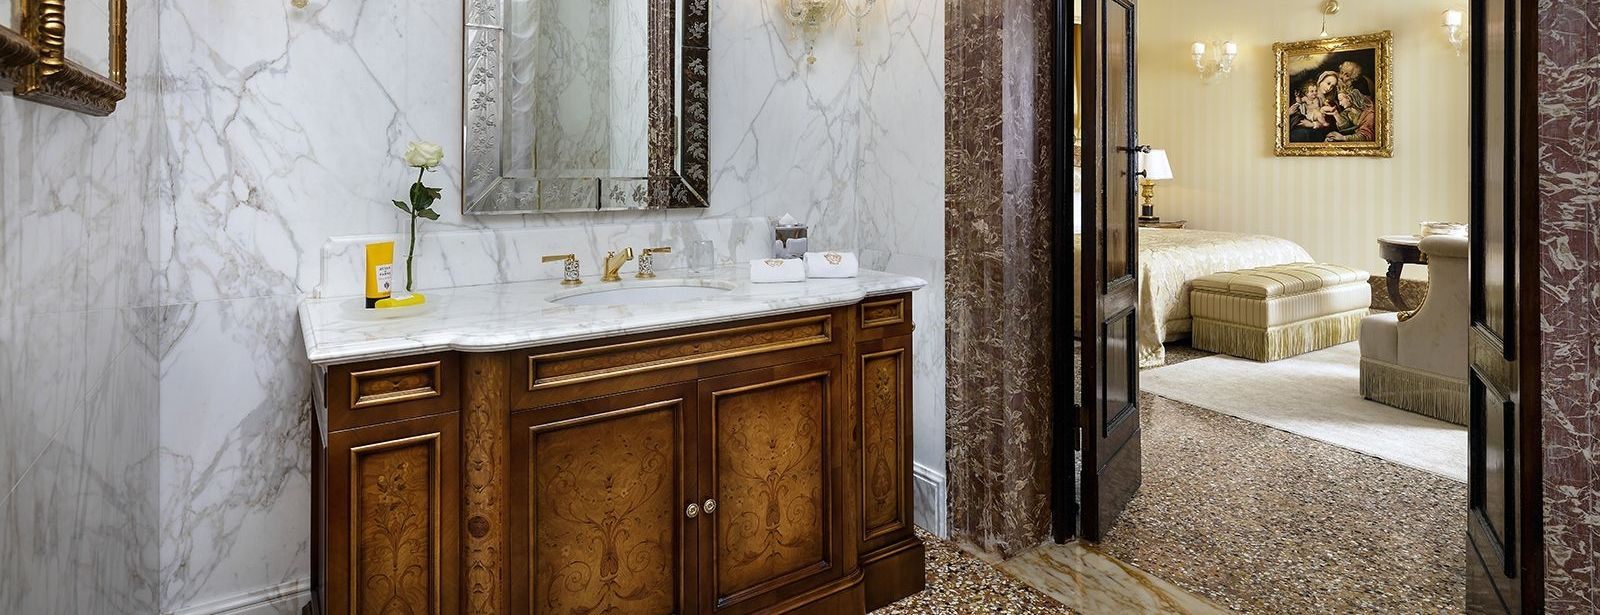 Royal Suite powder room